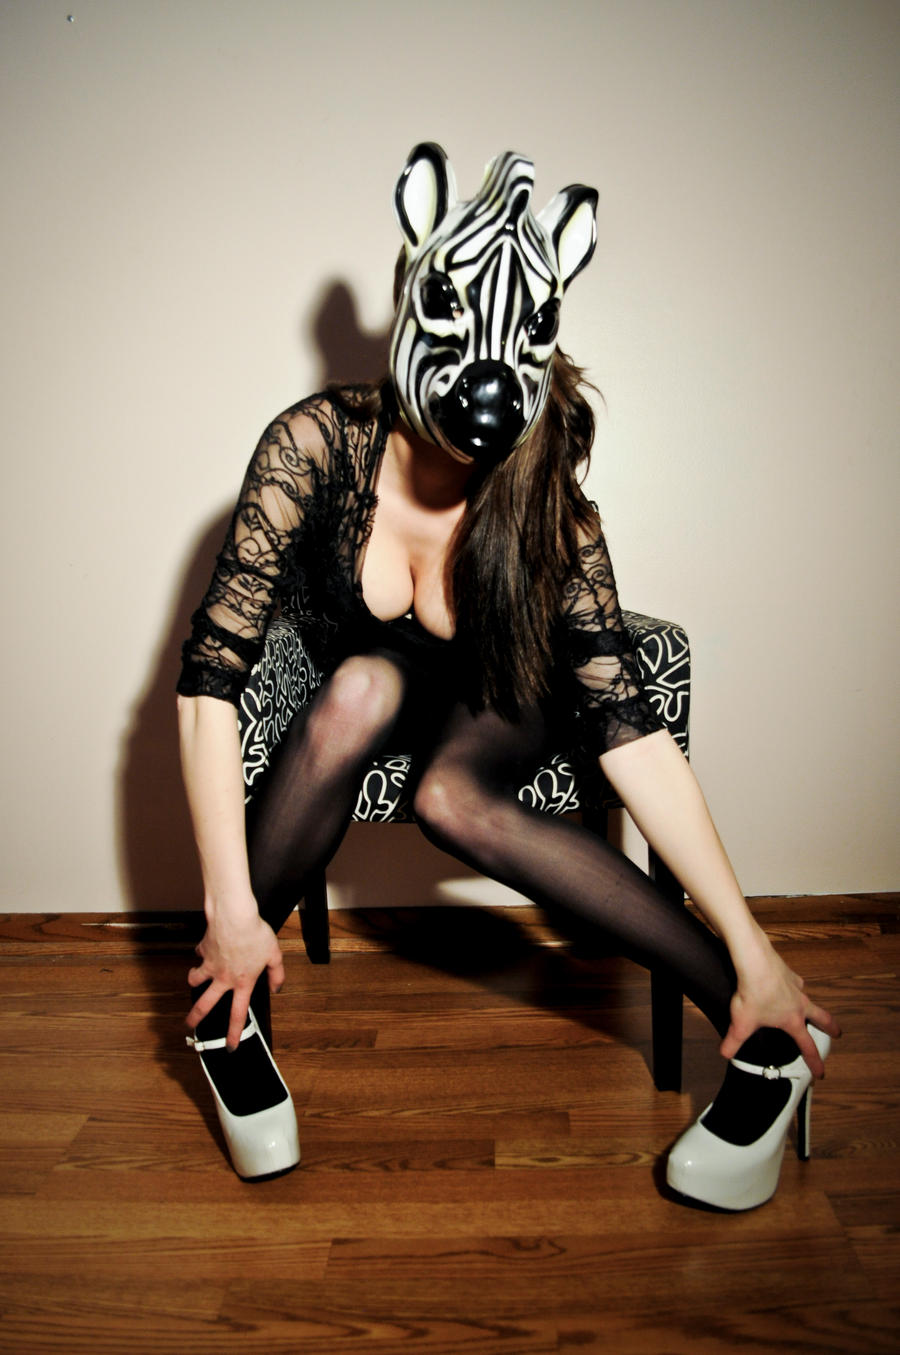 Zebra by marissamartha